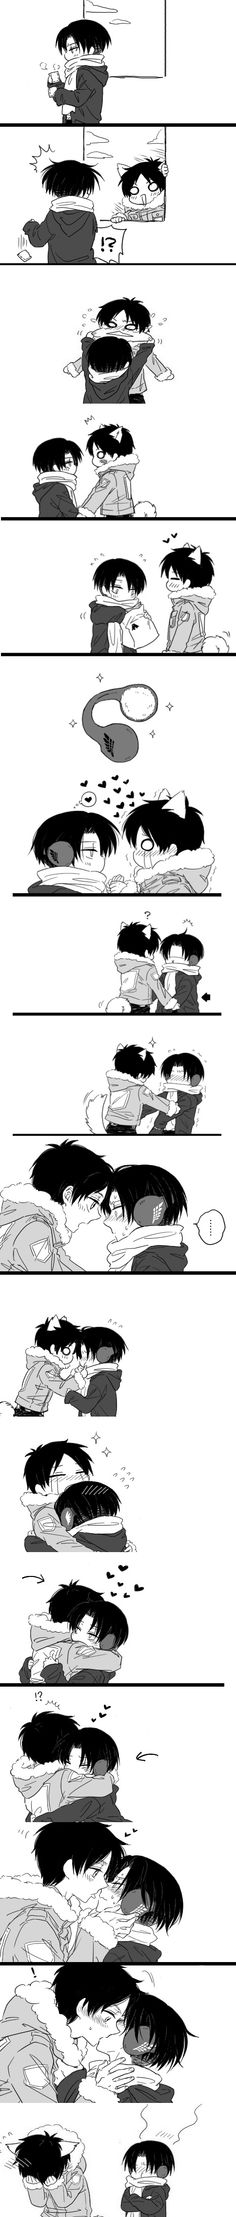 Rivaille (Levi) x Eren Jaeger - SNK Attack on Titan THATS SO FREAKING CUTE